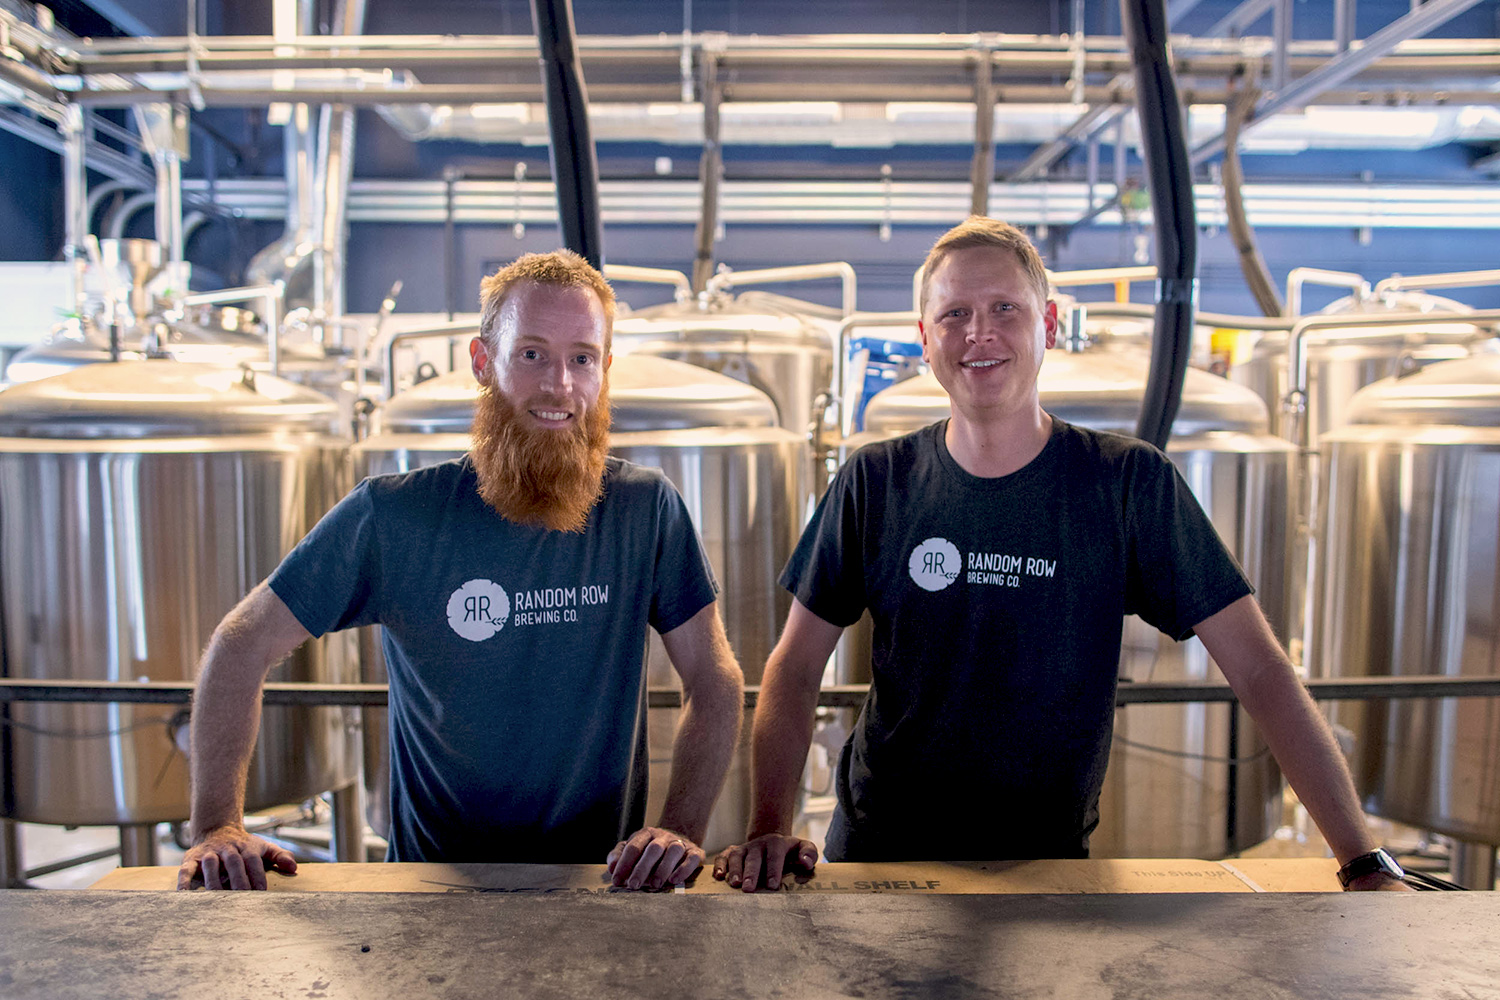 Kevin McElroy, left, and Bradley Kipp stand behind the bar at Random Row Brewing Co. (Photo by Sanjay Suchak/University Communications)